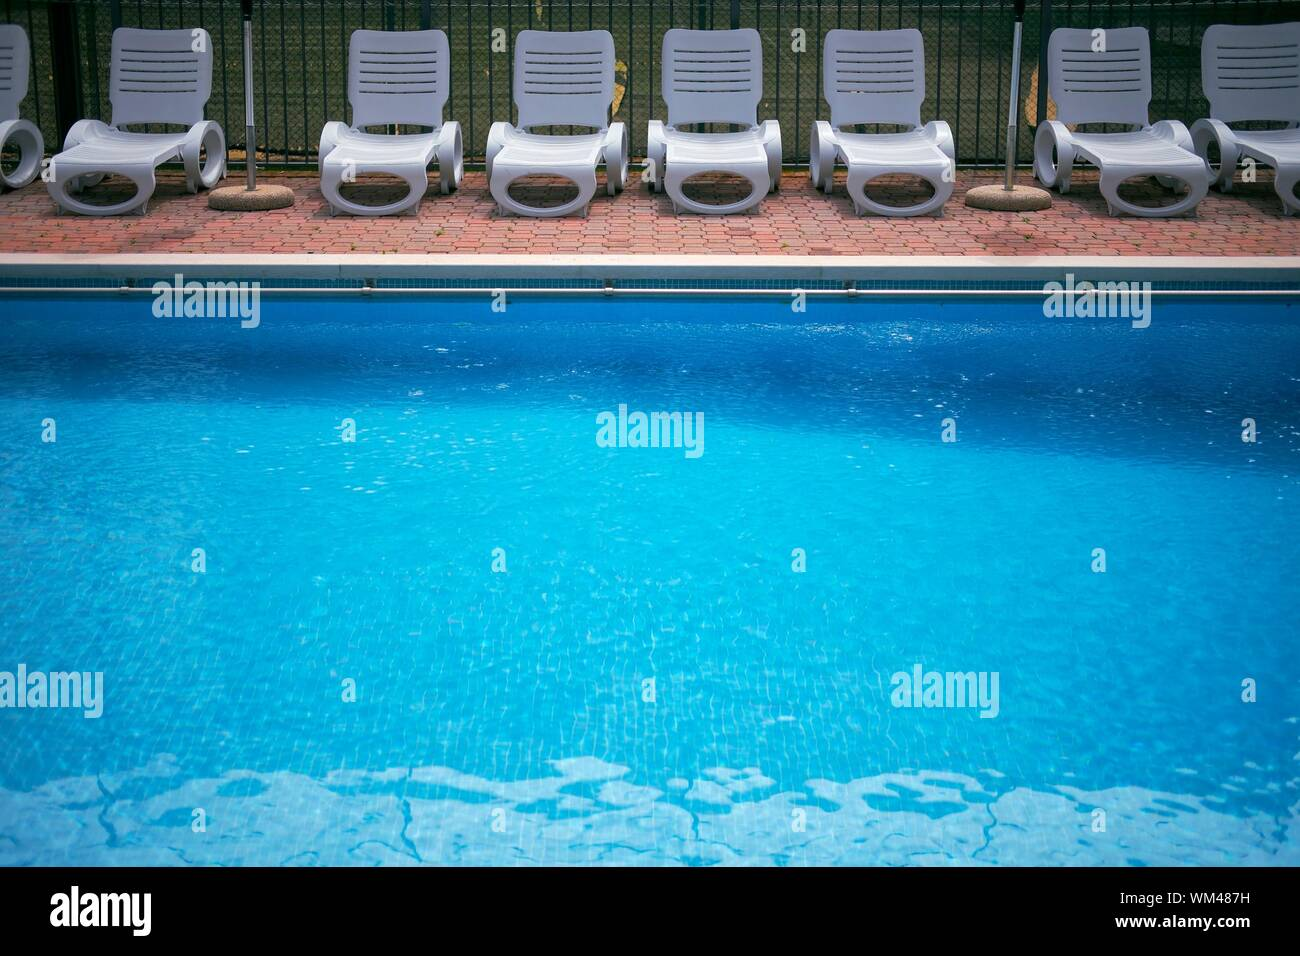 Outdoor Natural Gas Fire Pit Table, High Angle View Of Swimming Pool With Lounge Chairs On Poolside Stock Photo Alamy